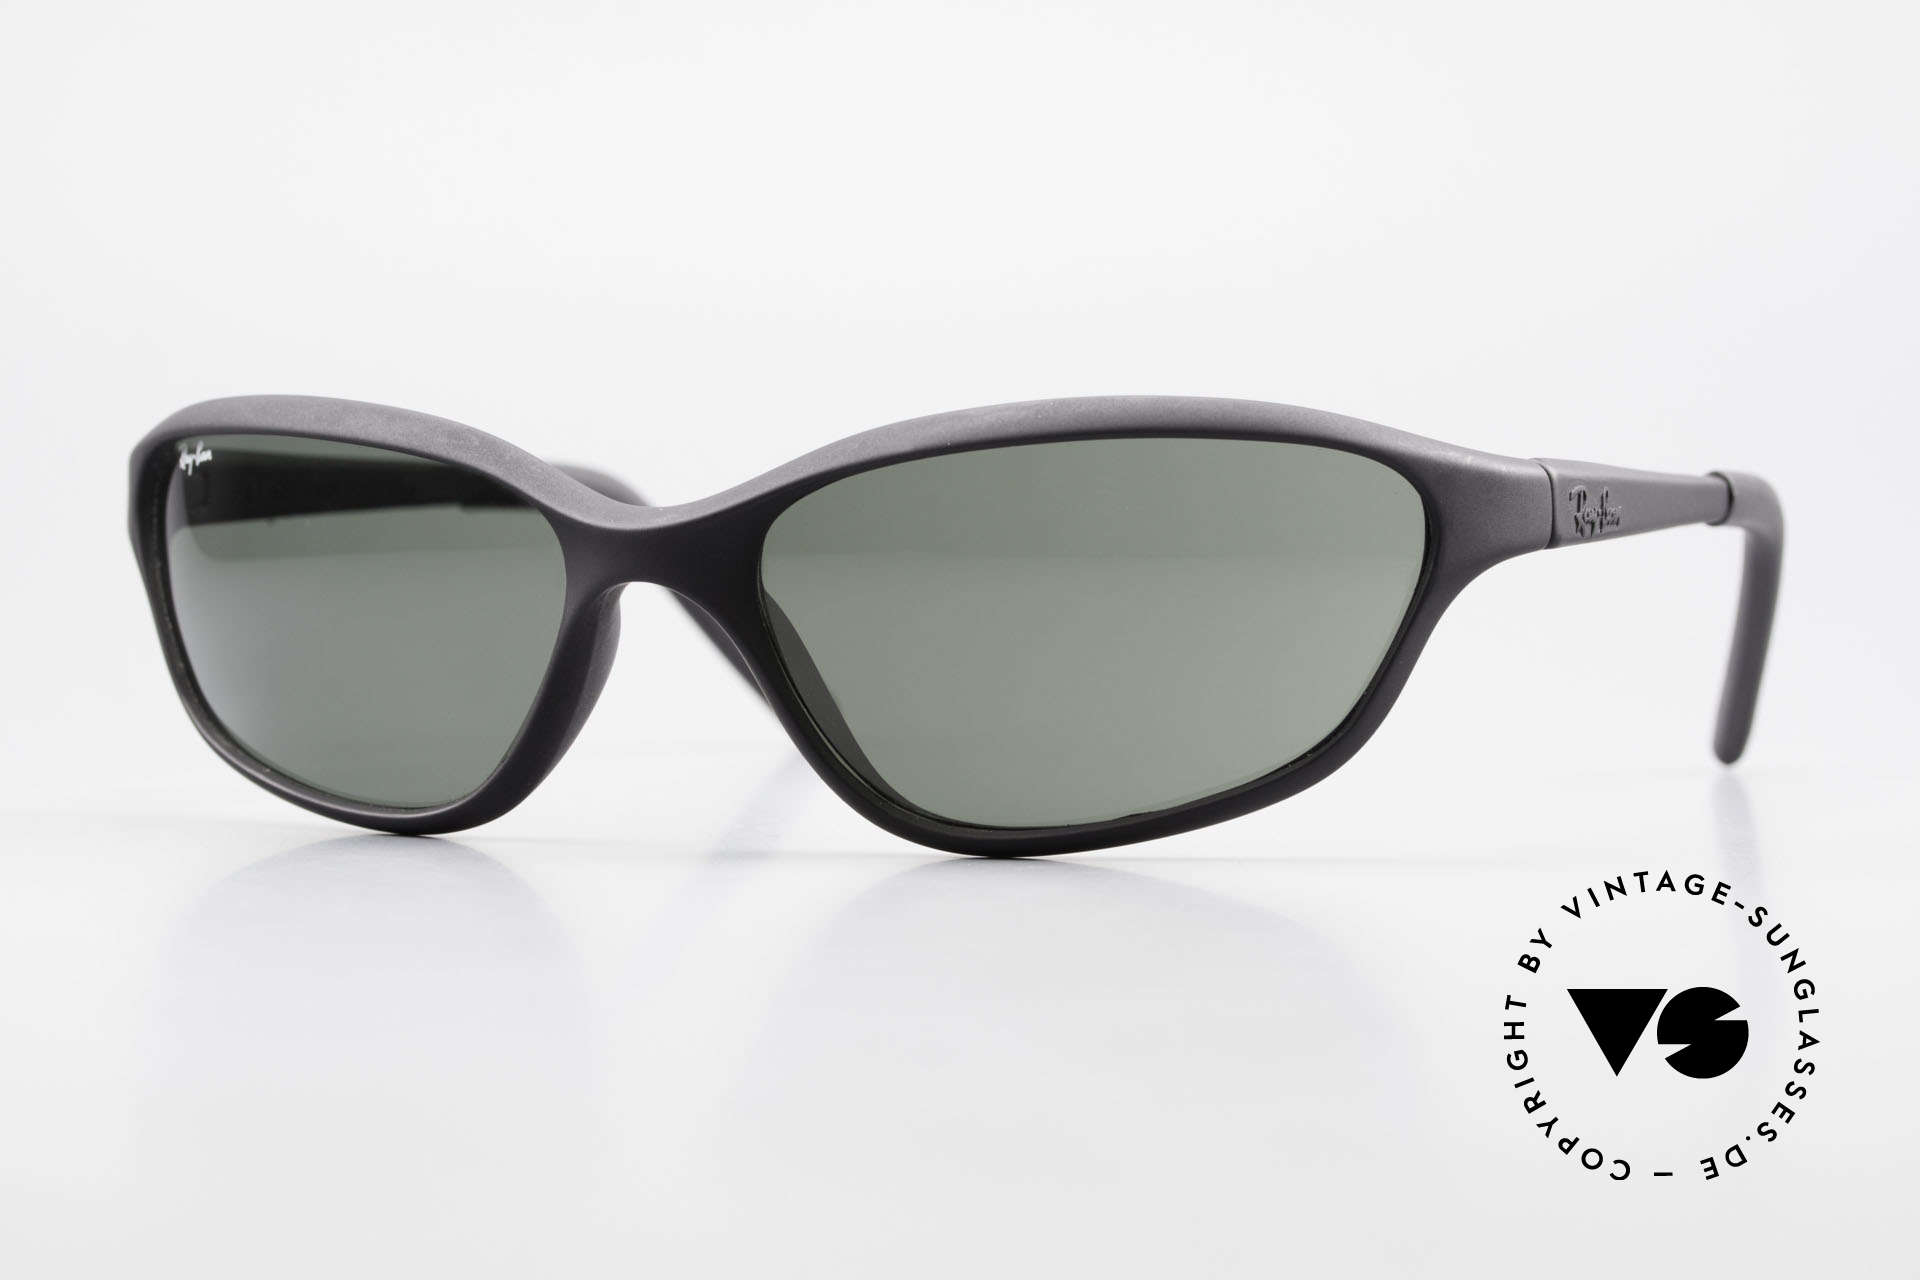 Ray Ban Predator 10 Sporty USA Ray-Ban B&L Shades, model W2966 from the Ray Ban Predator Series, Made for Men